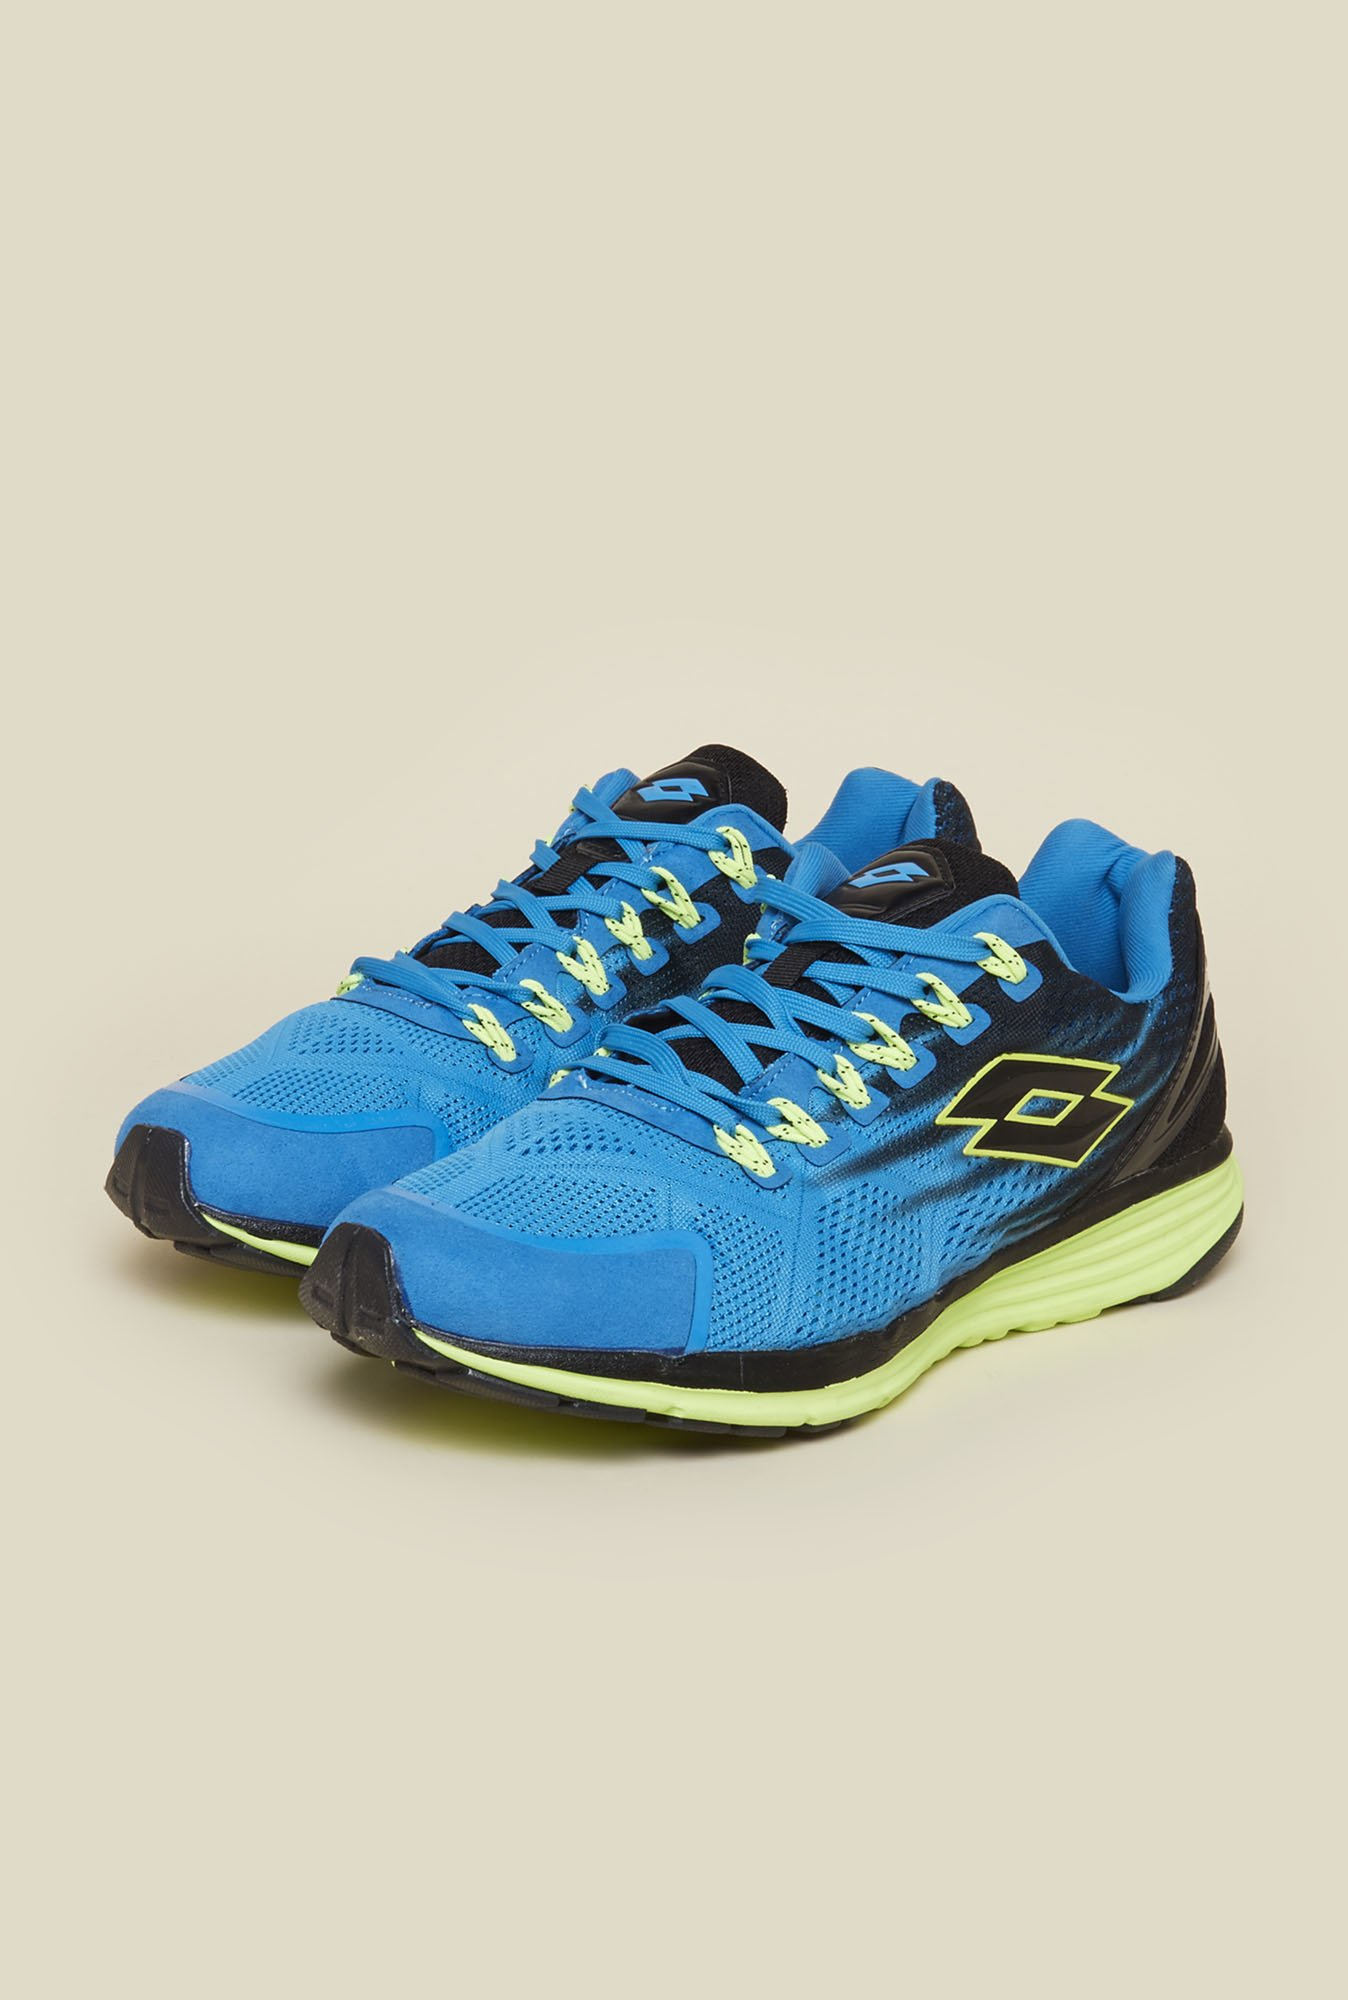 Lotto Windride Blue & Black Running Shoes